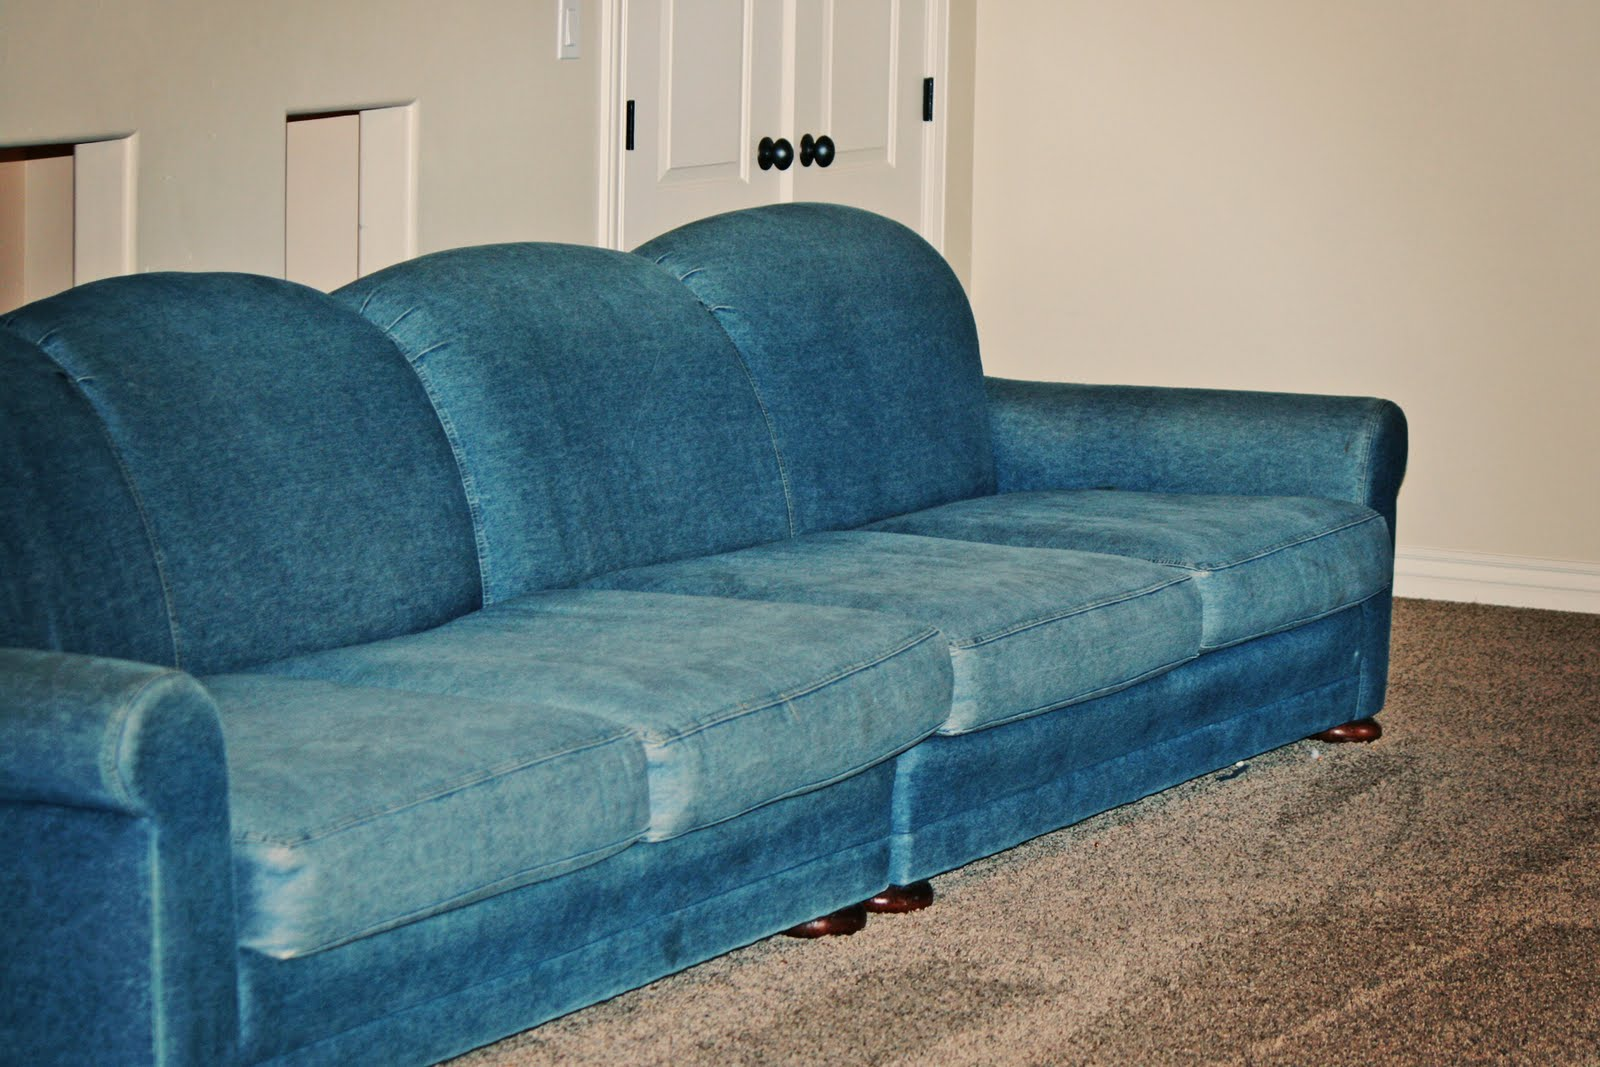 Denim sofa ikea Denim loveseat